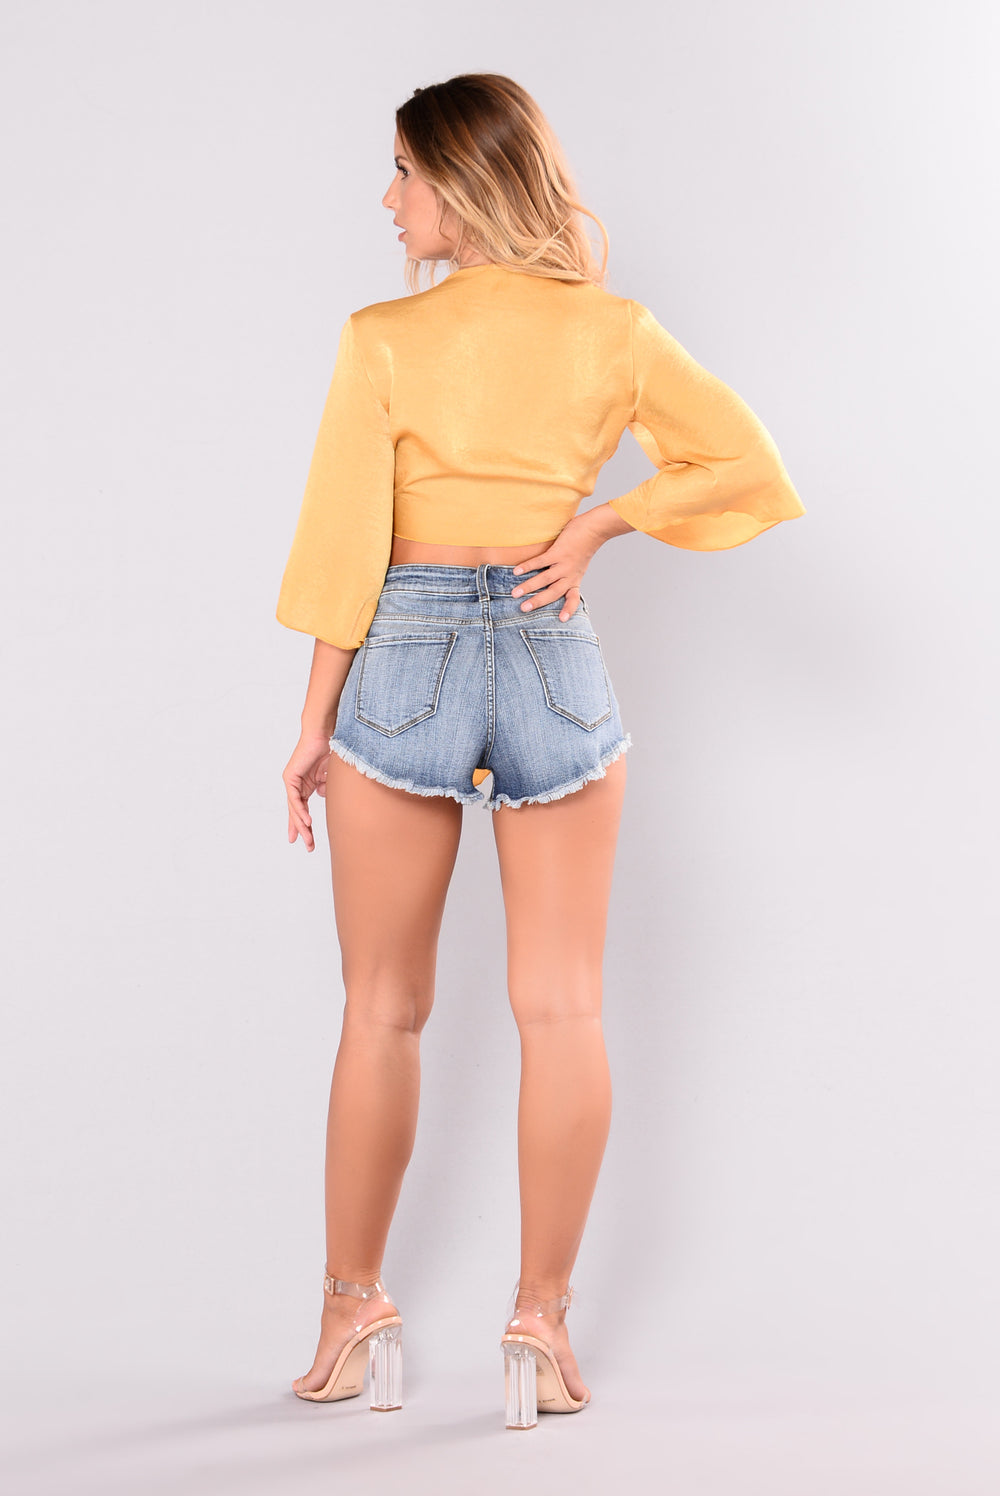 Whatever You Like Crop Top - Mustard